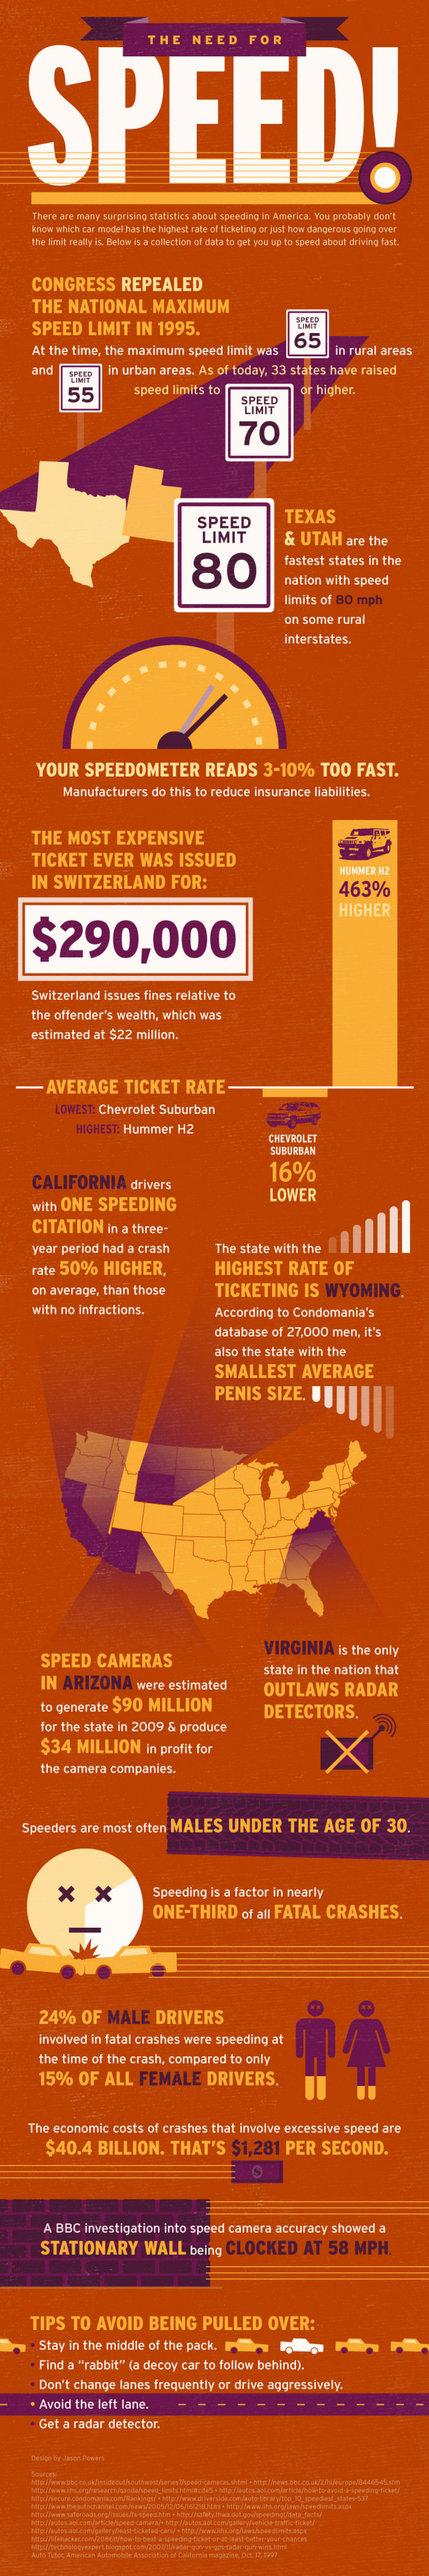 The Need for Speed Infographic